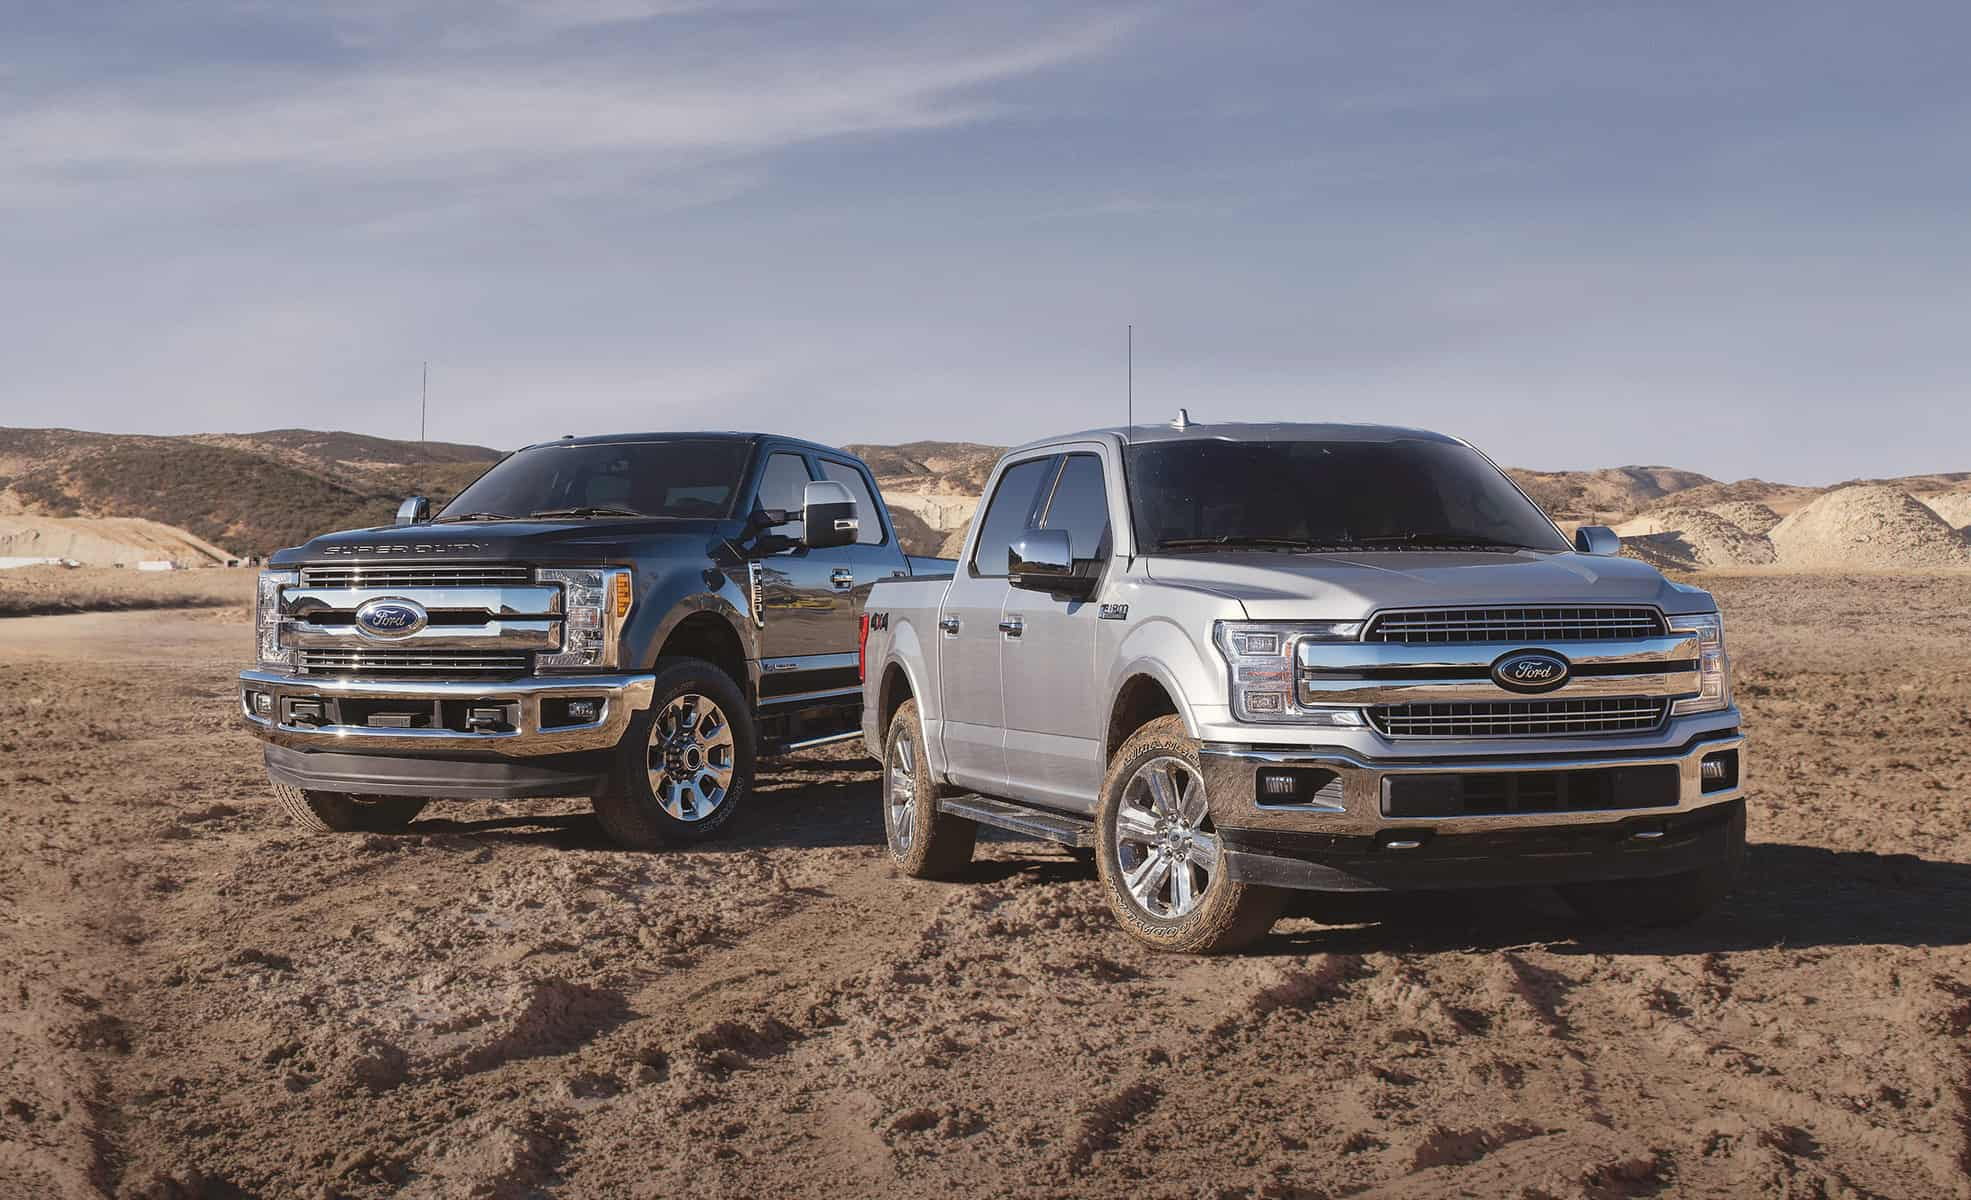 When Did Ford Change F-150 Body Styles?